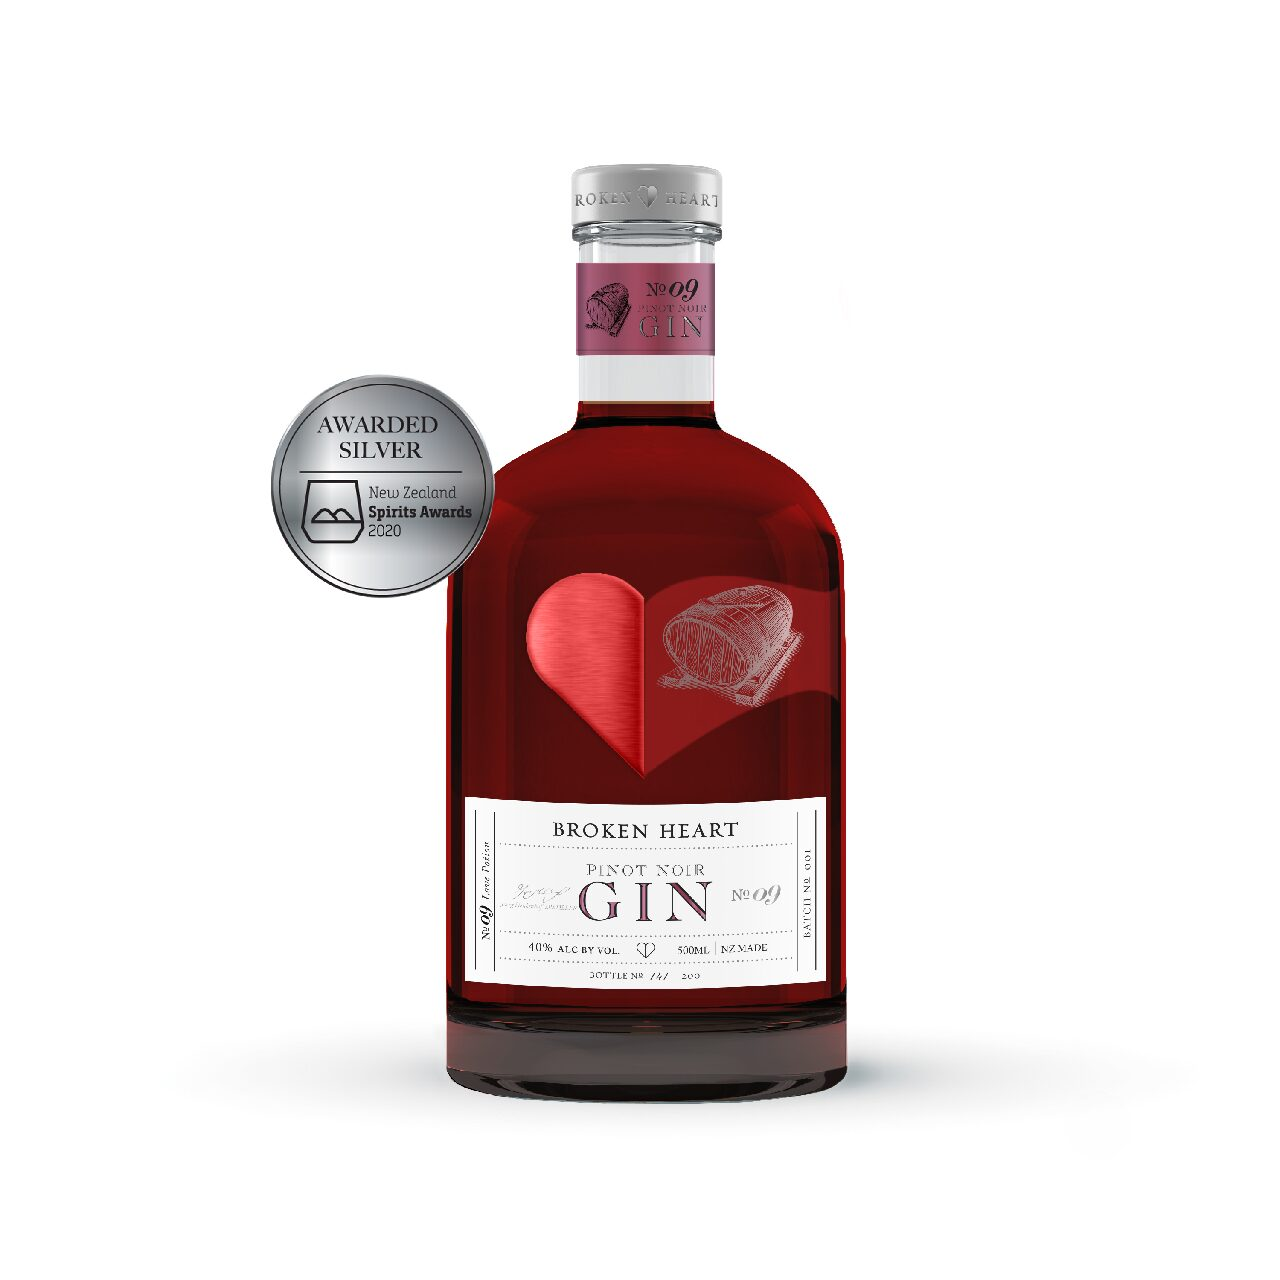 BH_Pinot Noir Gin updated copy